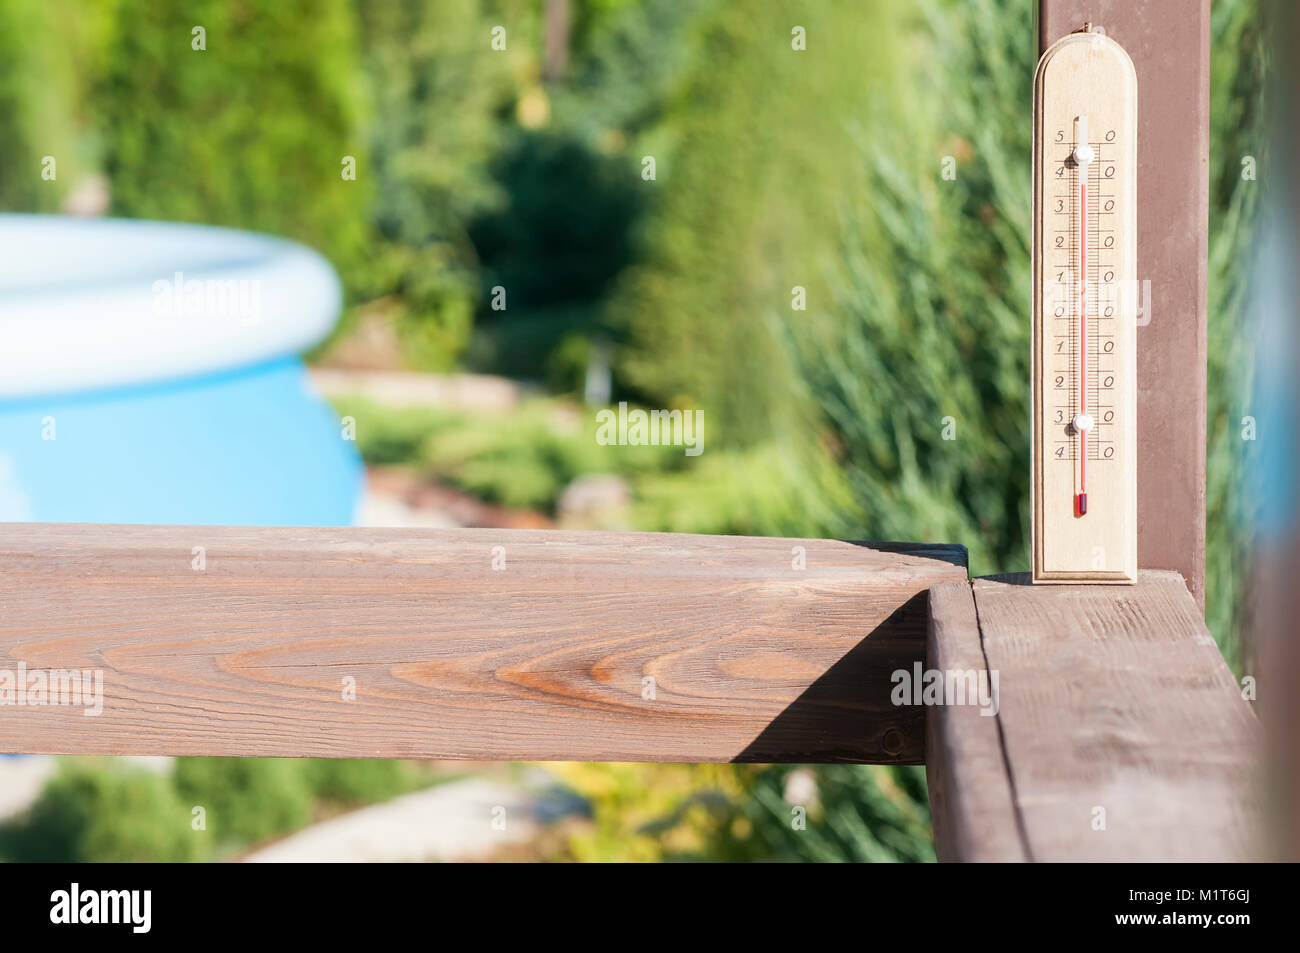 Wooden garden thermometer on a street in a country house - Stock Image